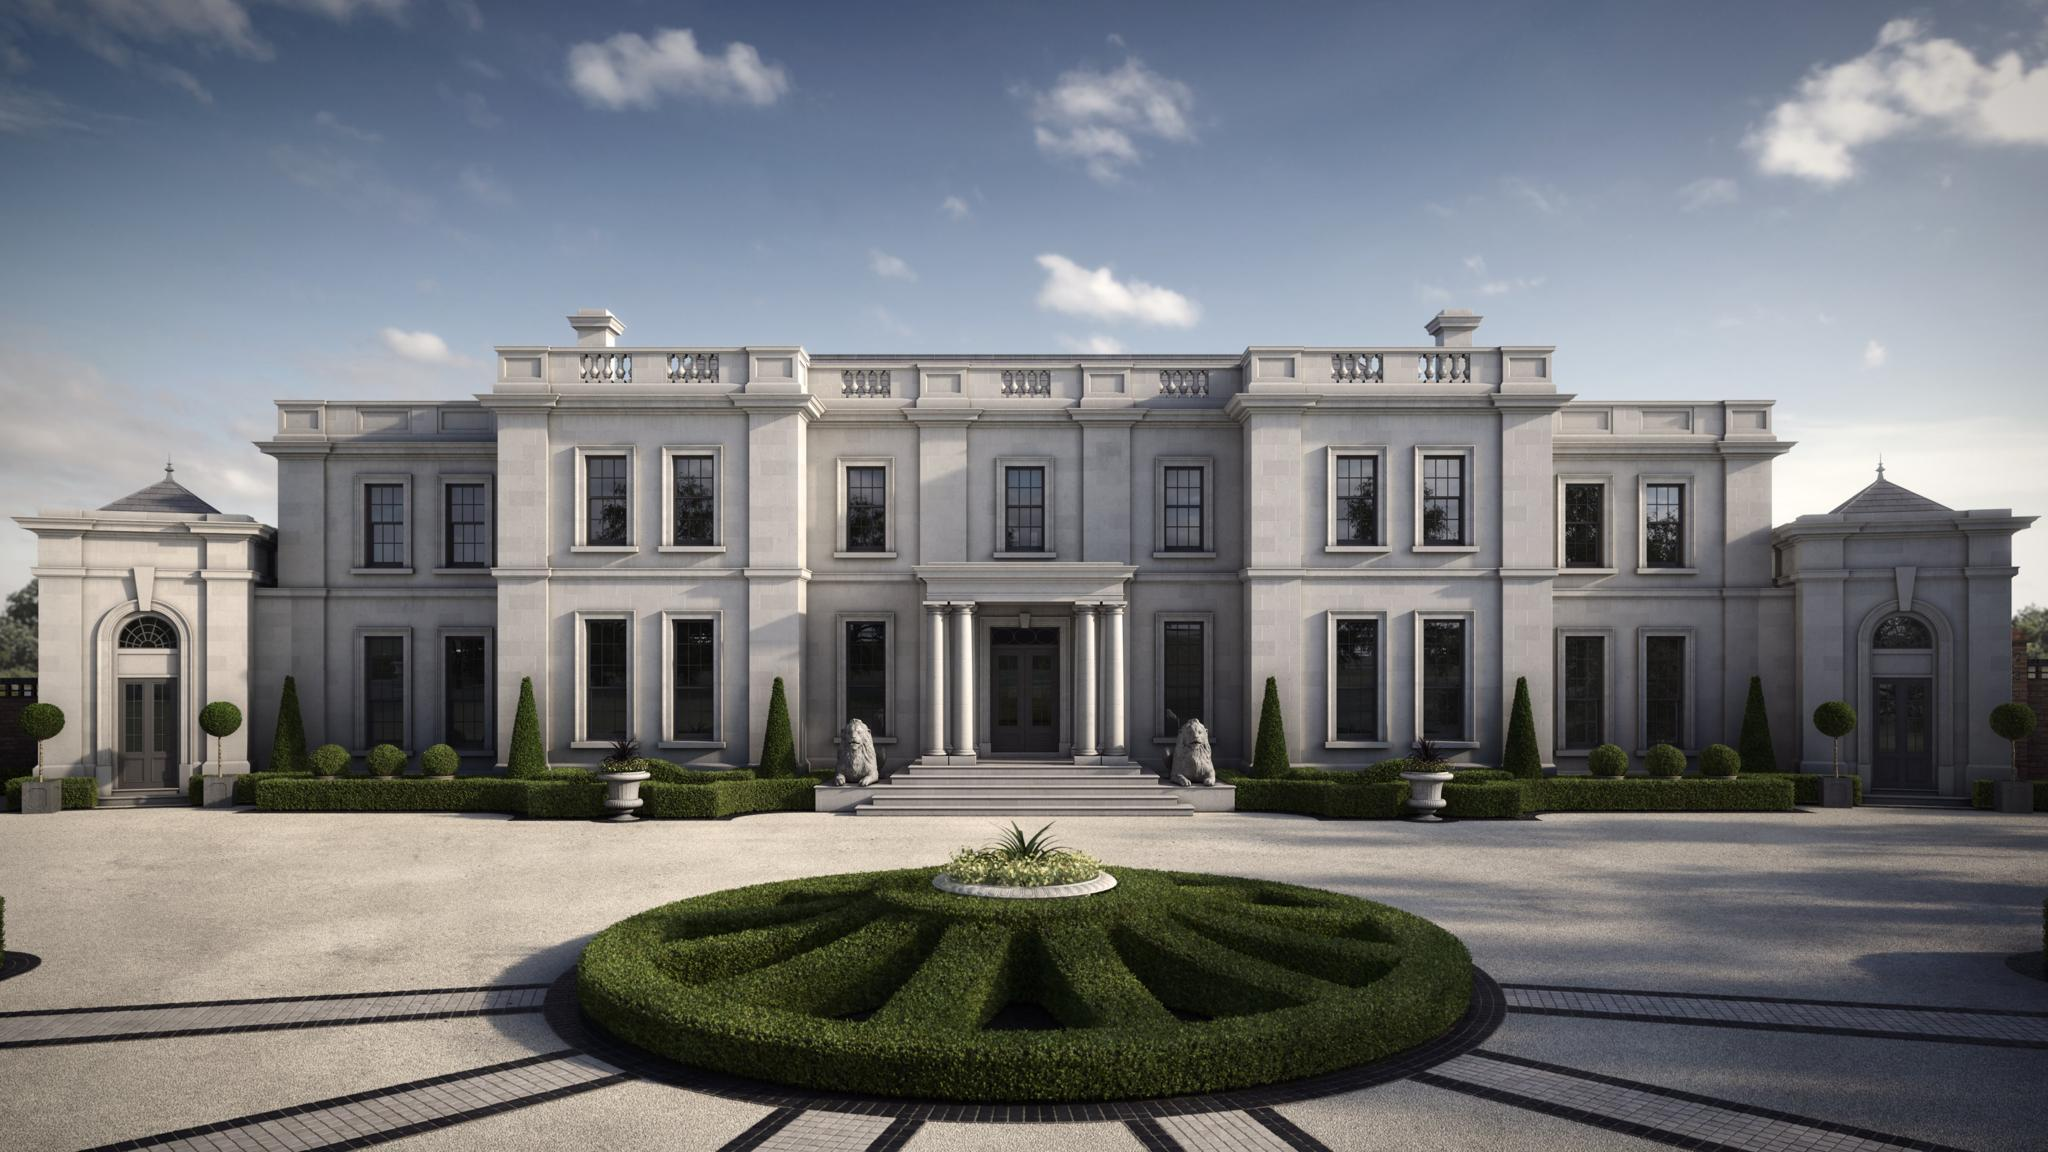 Floor Plans For Mansions Isle Of Man Builds On Legacy To Attract Homebuyers